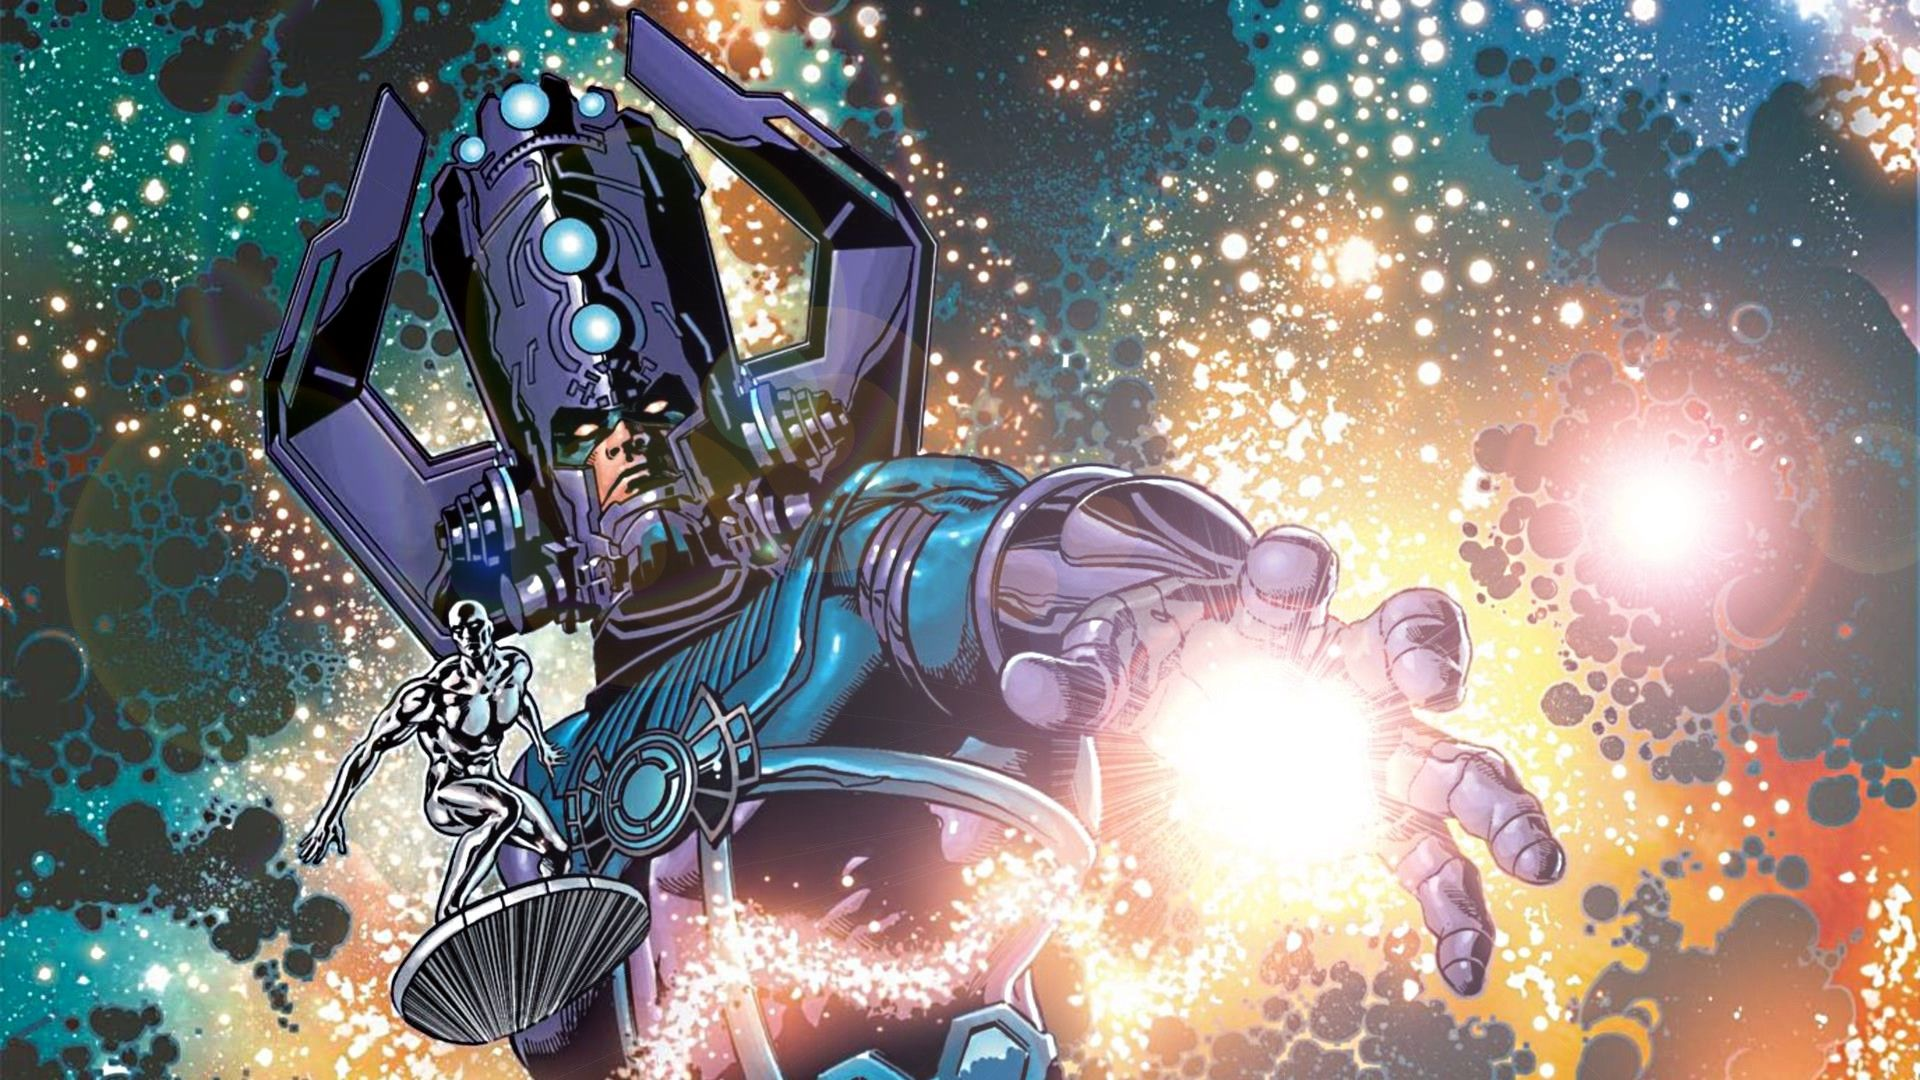 1920x1080 Galactus Wallpapers 12 - 1920 X 1080 | stmed.net